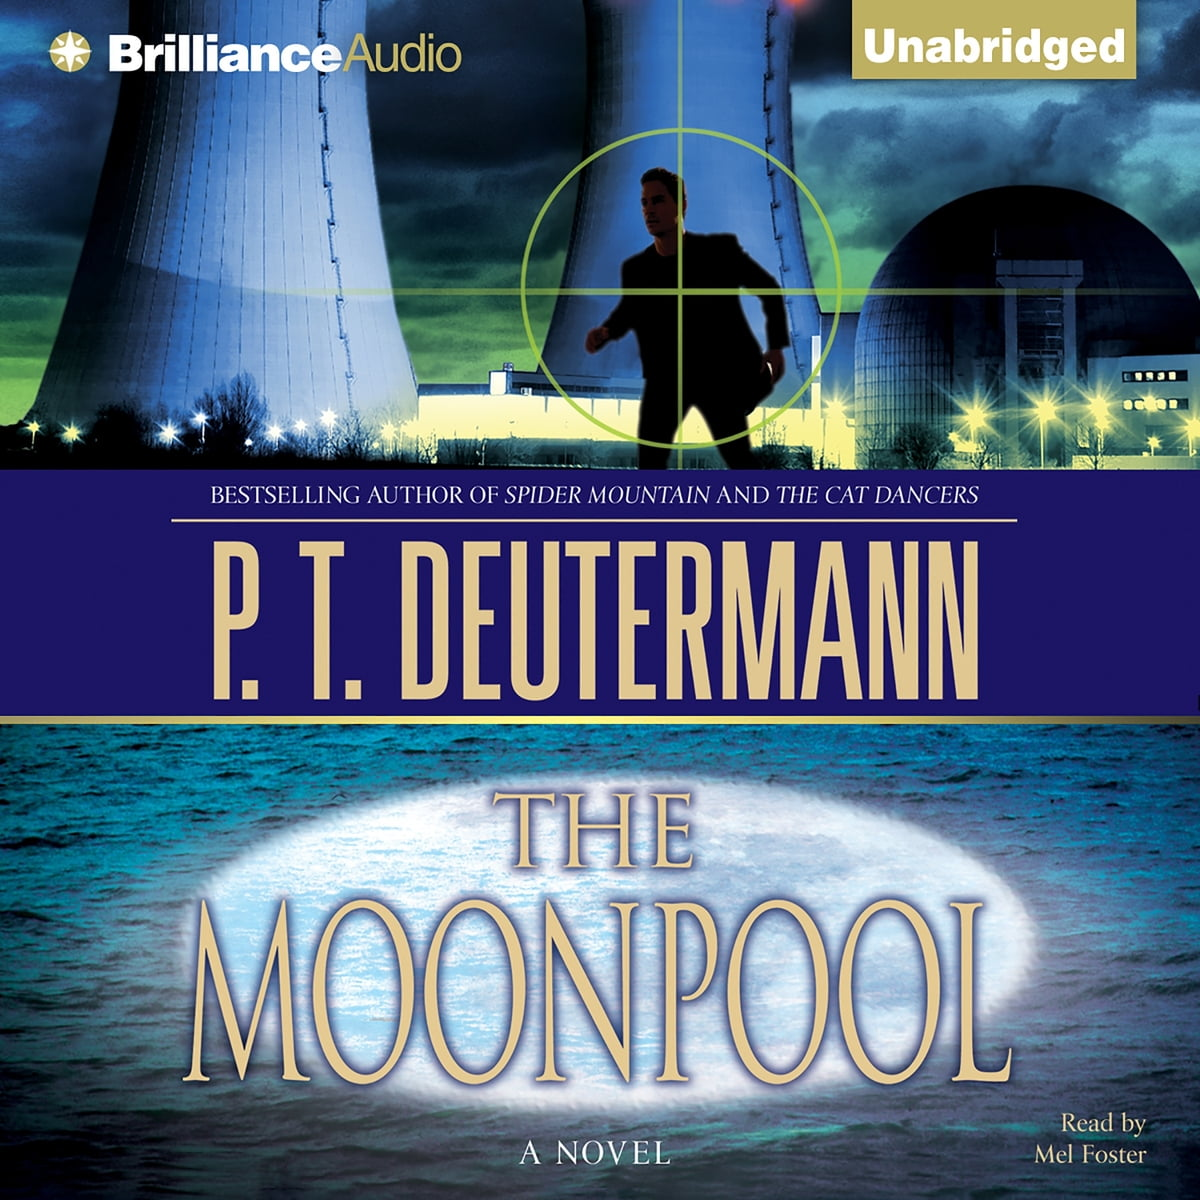 Moonpool, The Audiobook by P. T. Deutermann - 9781423336204 | Rakuten Kobo